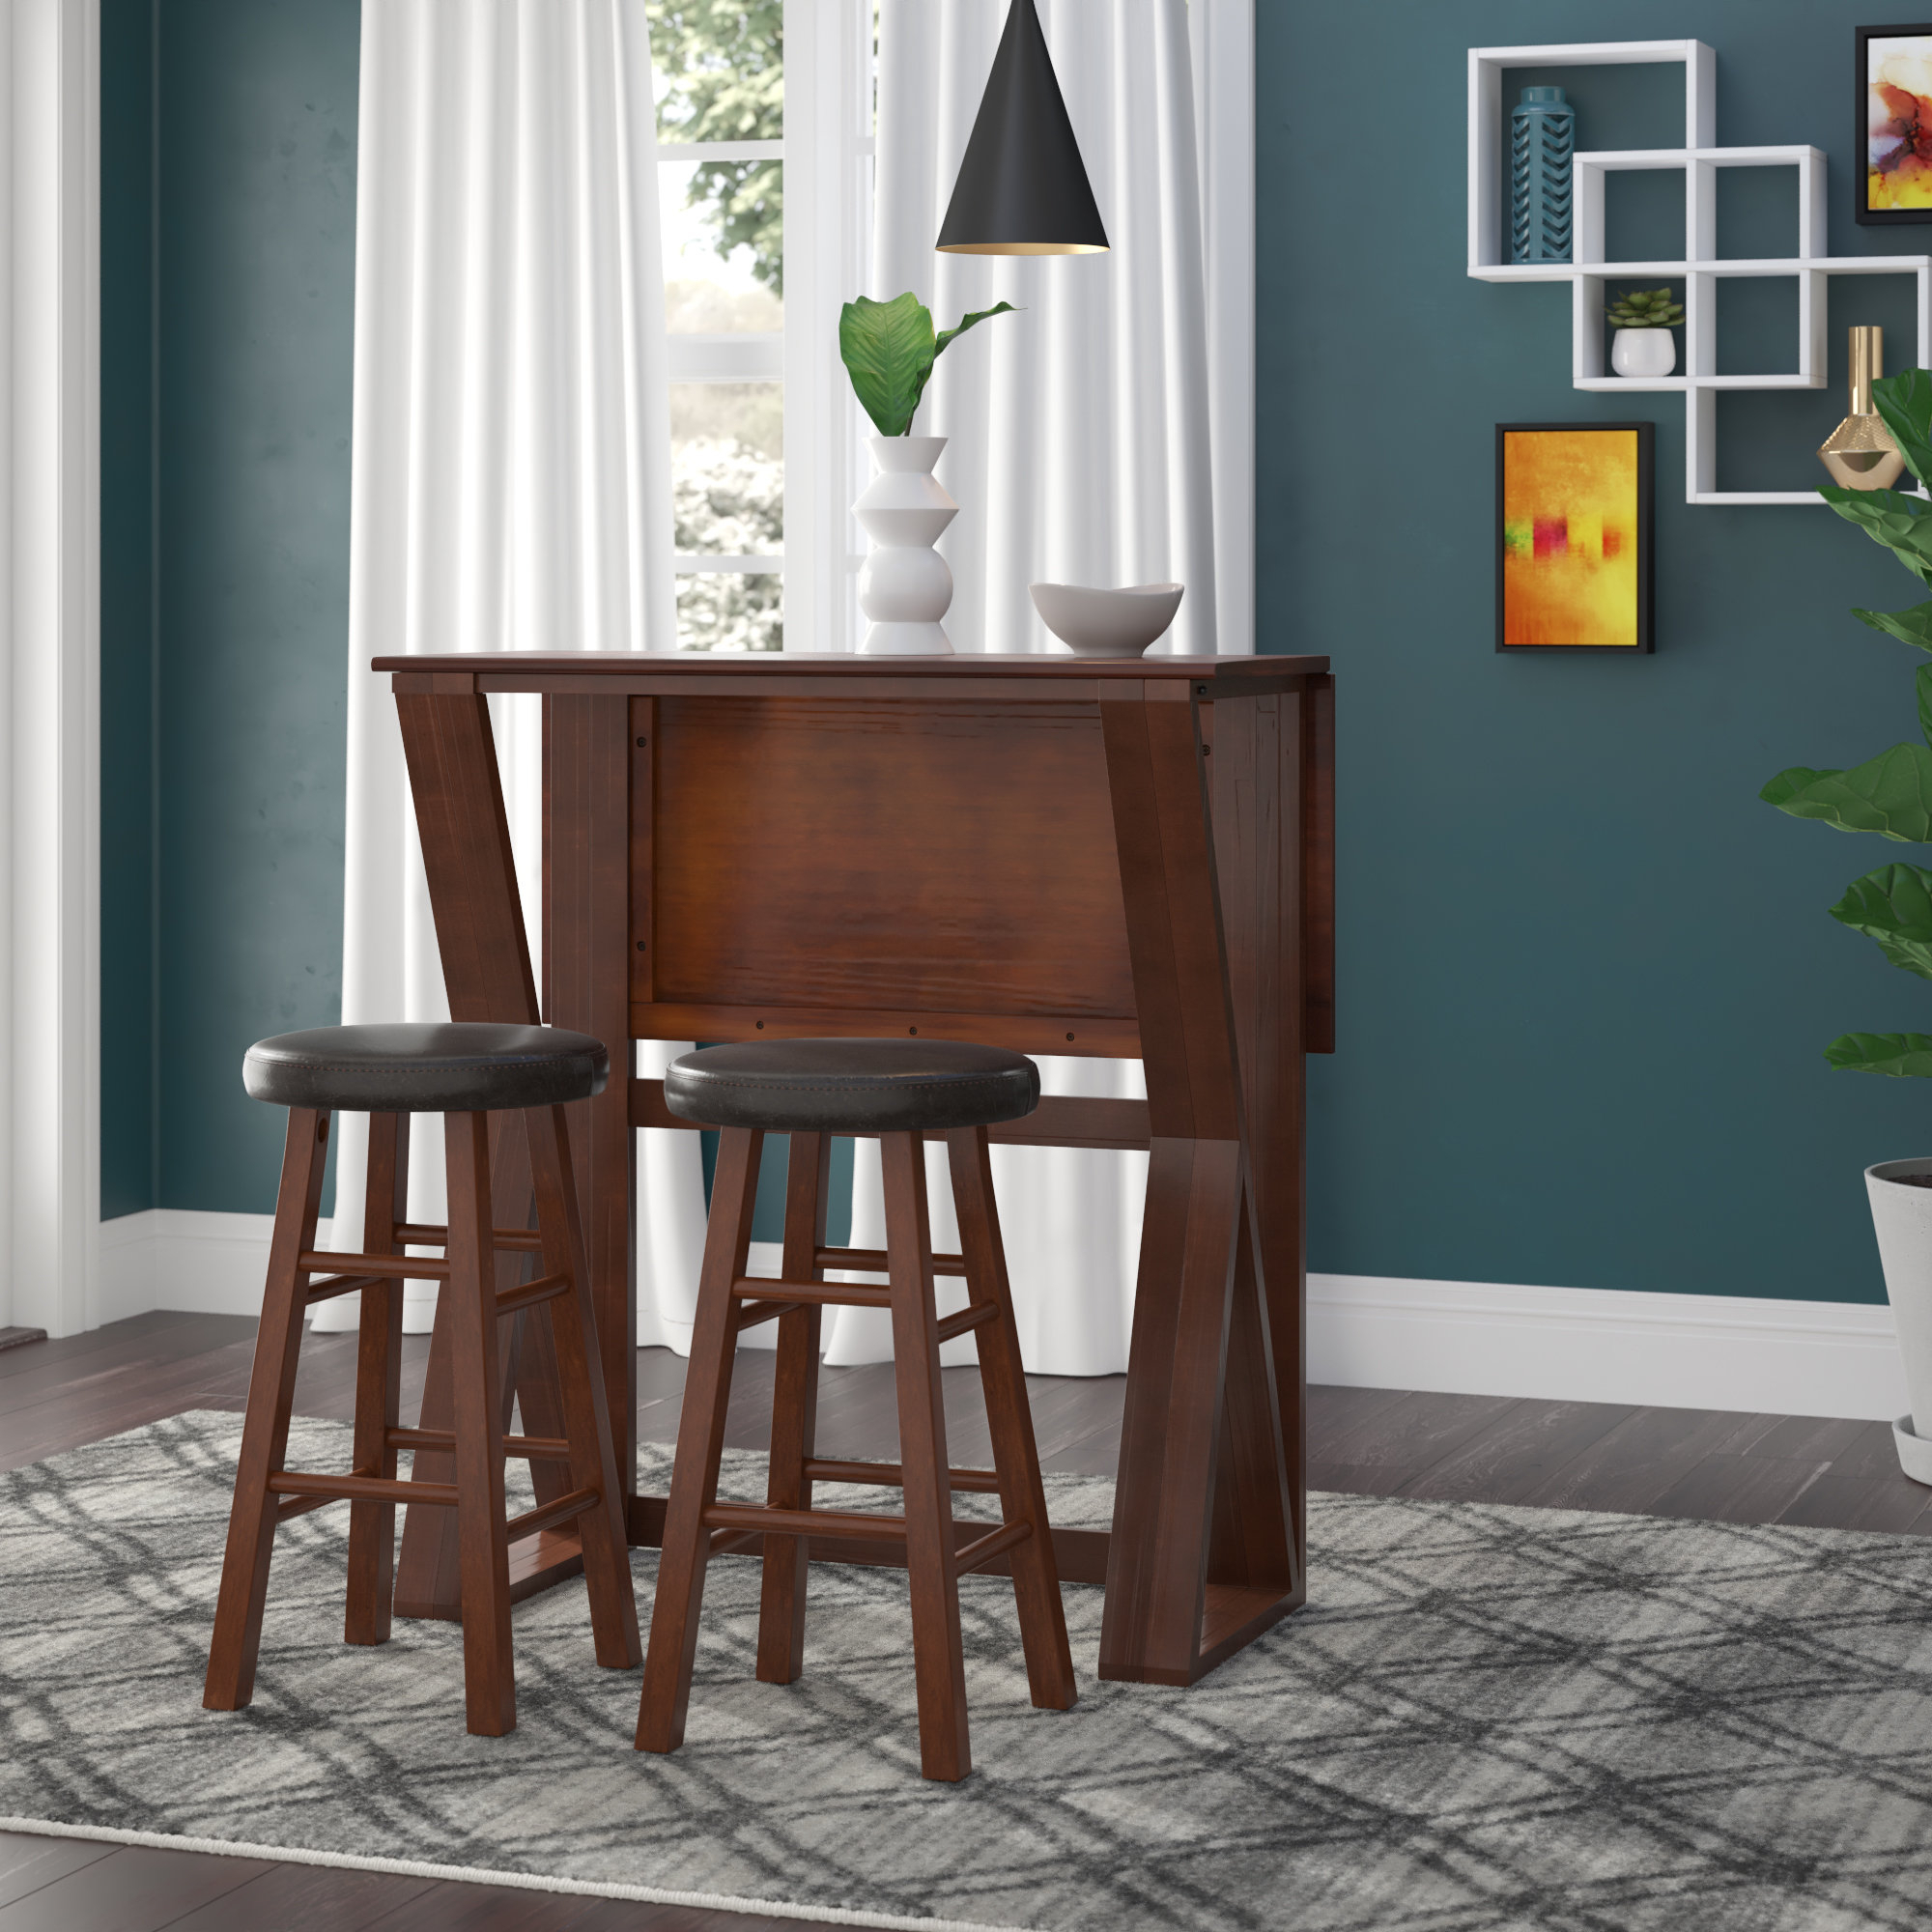 Brayan 3 Piece Drop Leaf Solid Wood Dining Set Throughout Most Up To Date Lonon 3 Piece Dining Sets (Image 3 of 20)